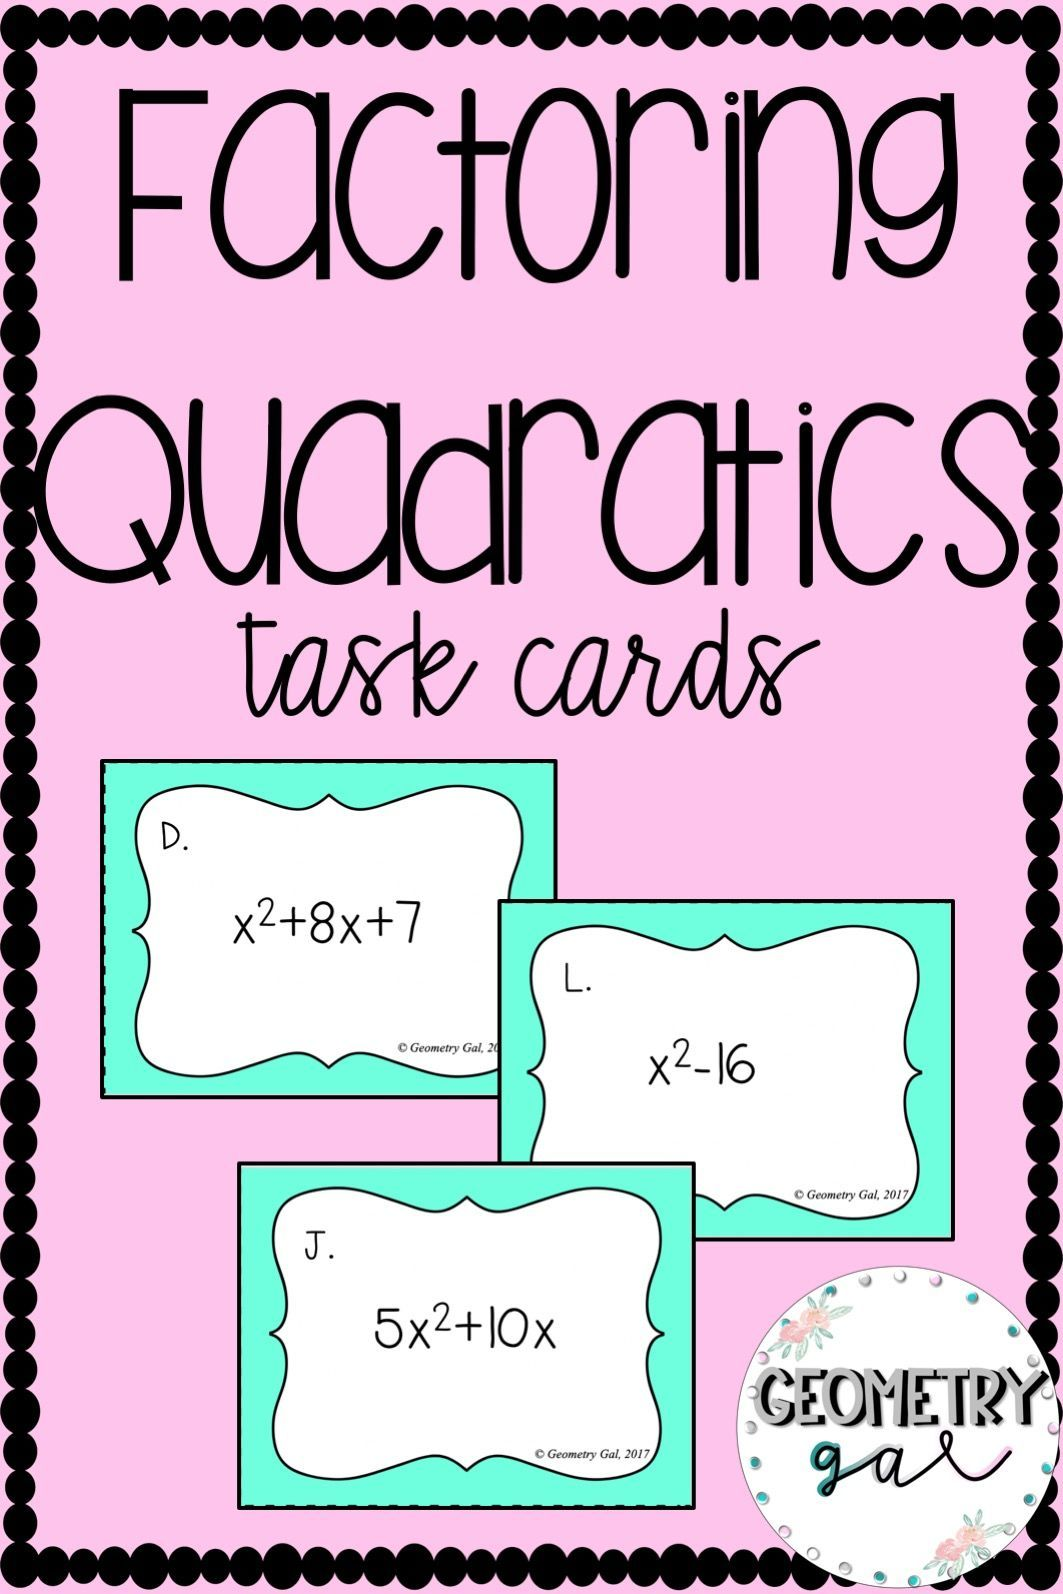 Factoring Quadratics Task Cards